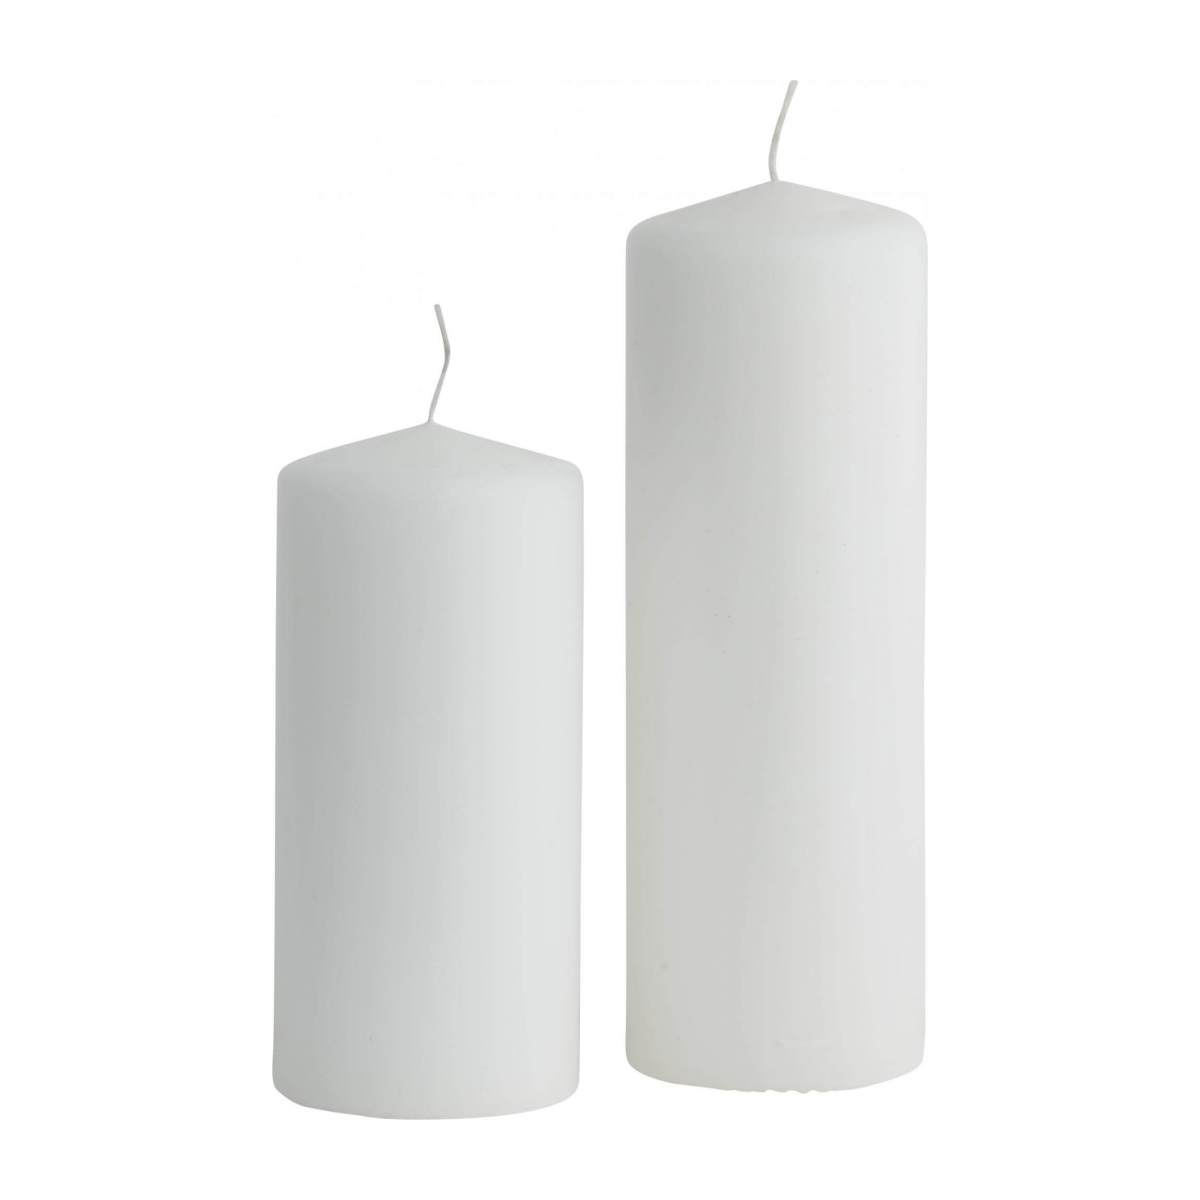 Bougie cylindre 10cm blanche n°2